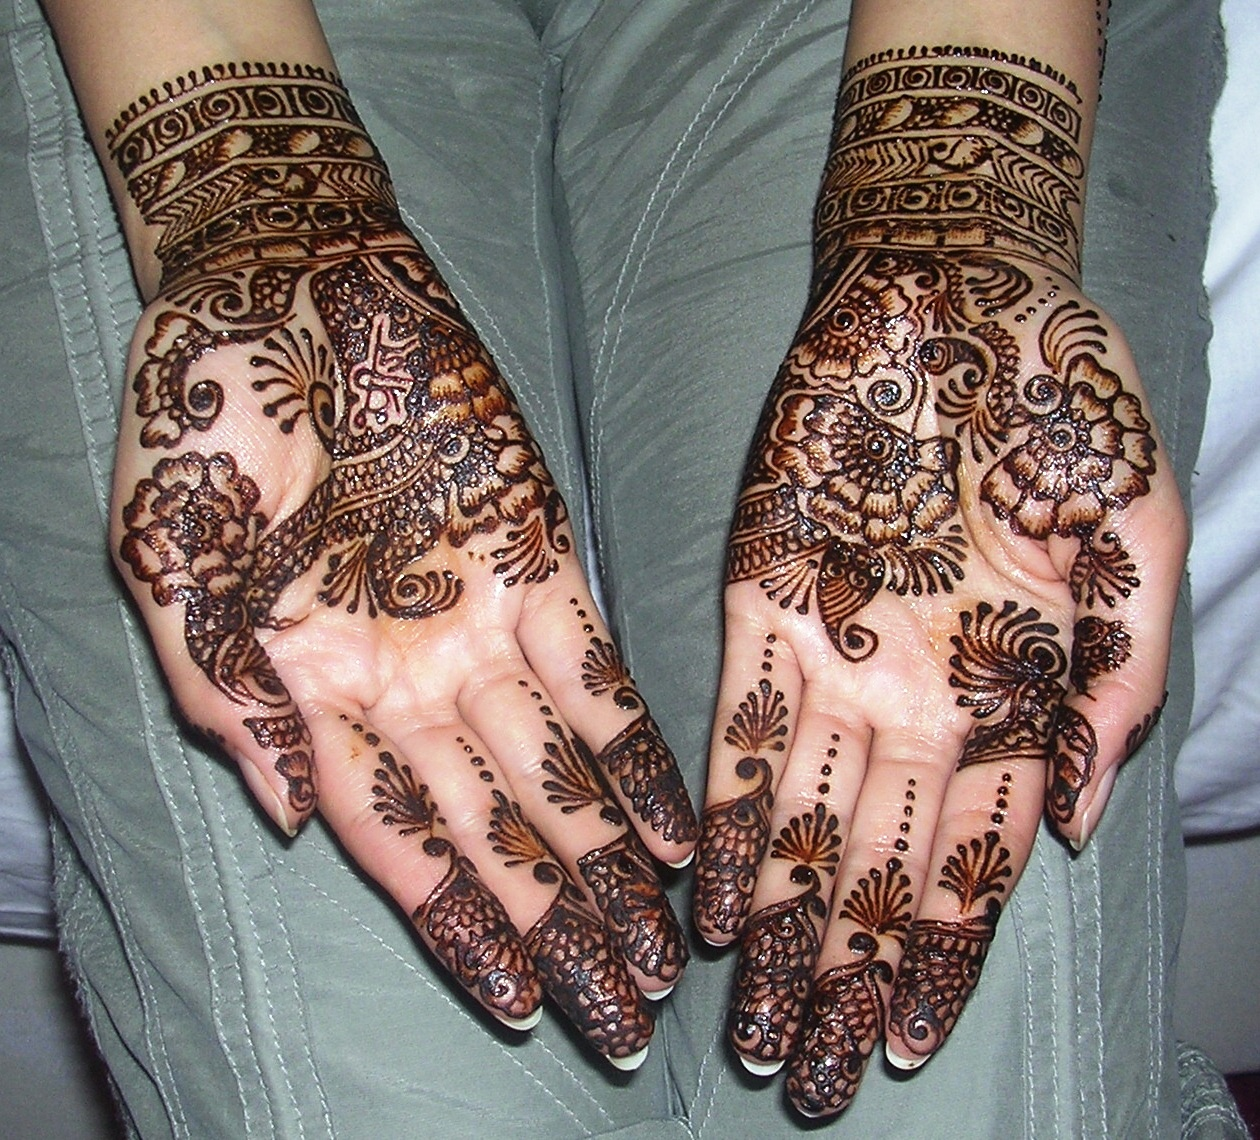 New Mehndi Patterns : Mixfashion new mehndi designs